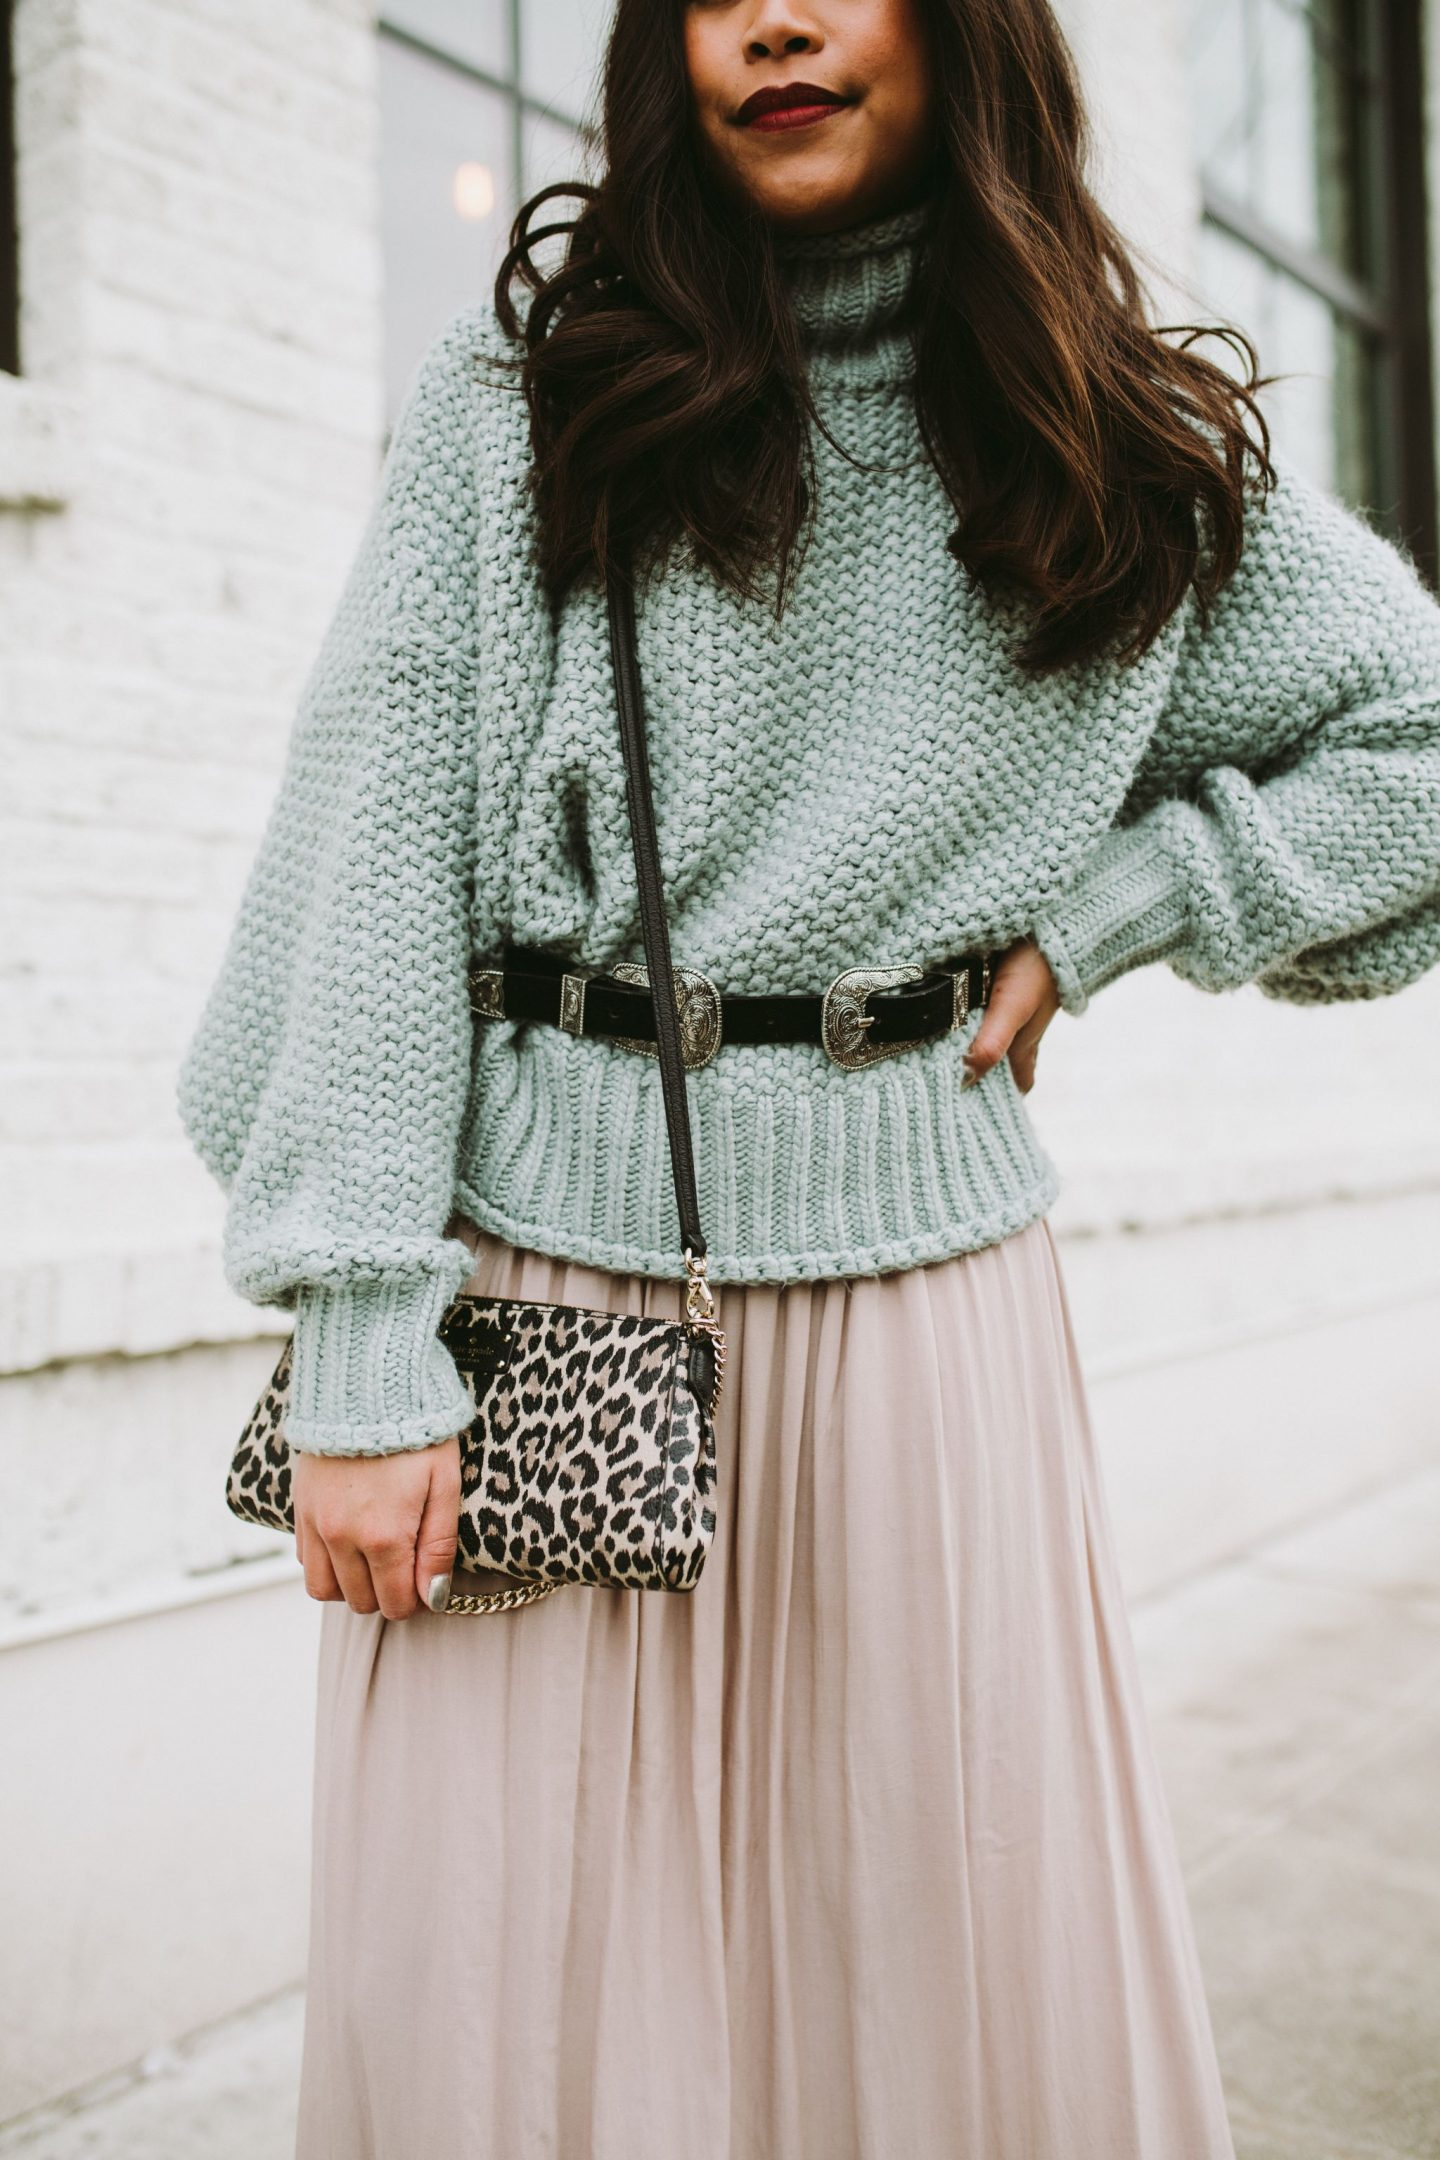 Stylish winter outfits – stylish winter outfits for women - stylish winter outfits cold weather - winter outfit ideas - winter outfit ideas to copy - winter fashion outfits - winter fashion outfits womens - winter fashion outfits casual